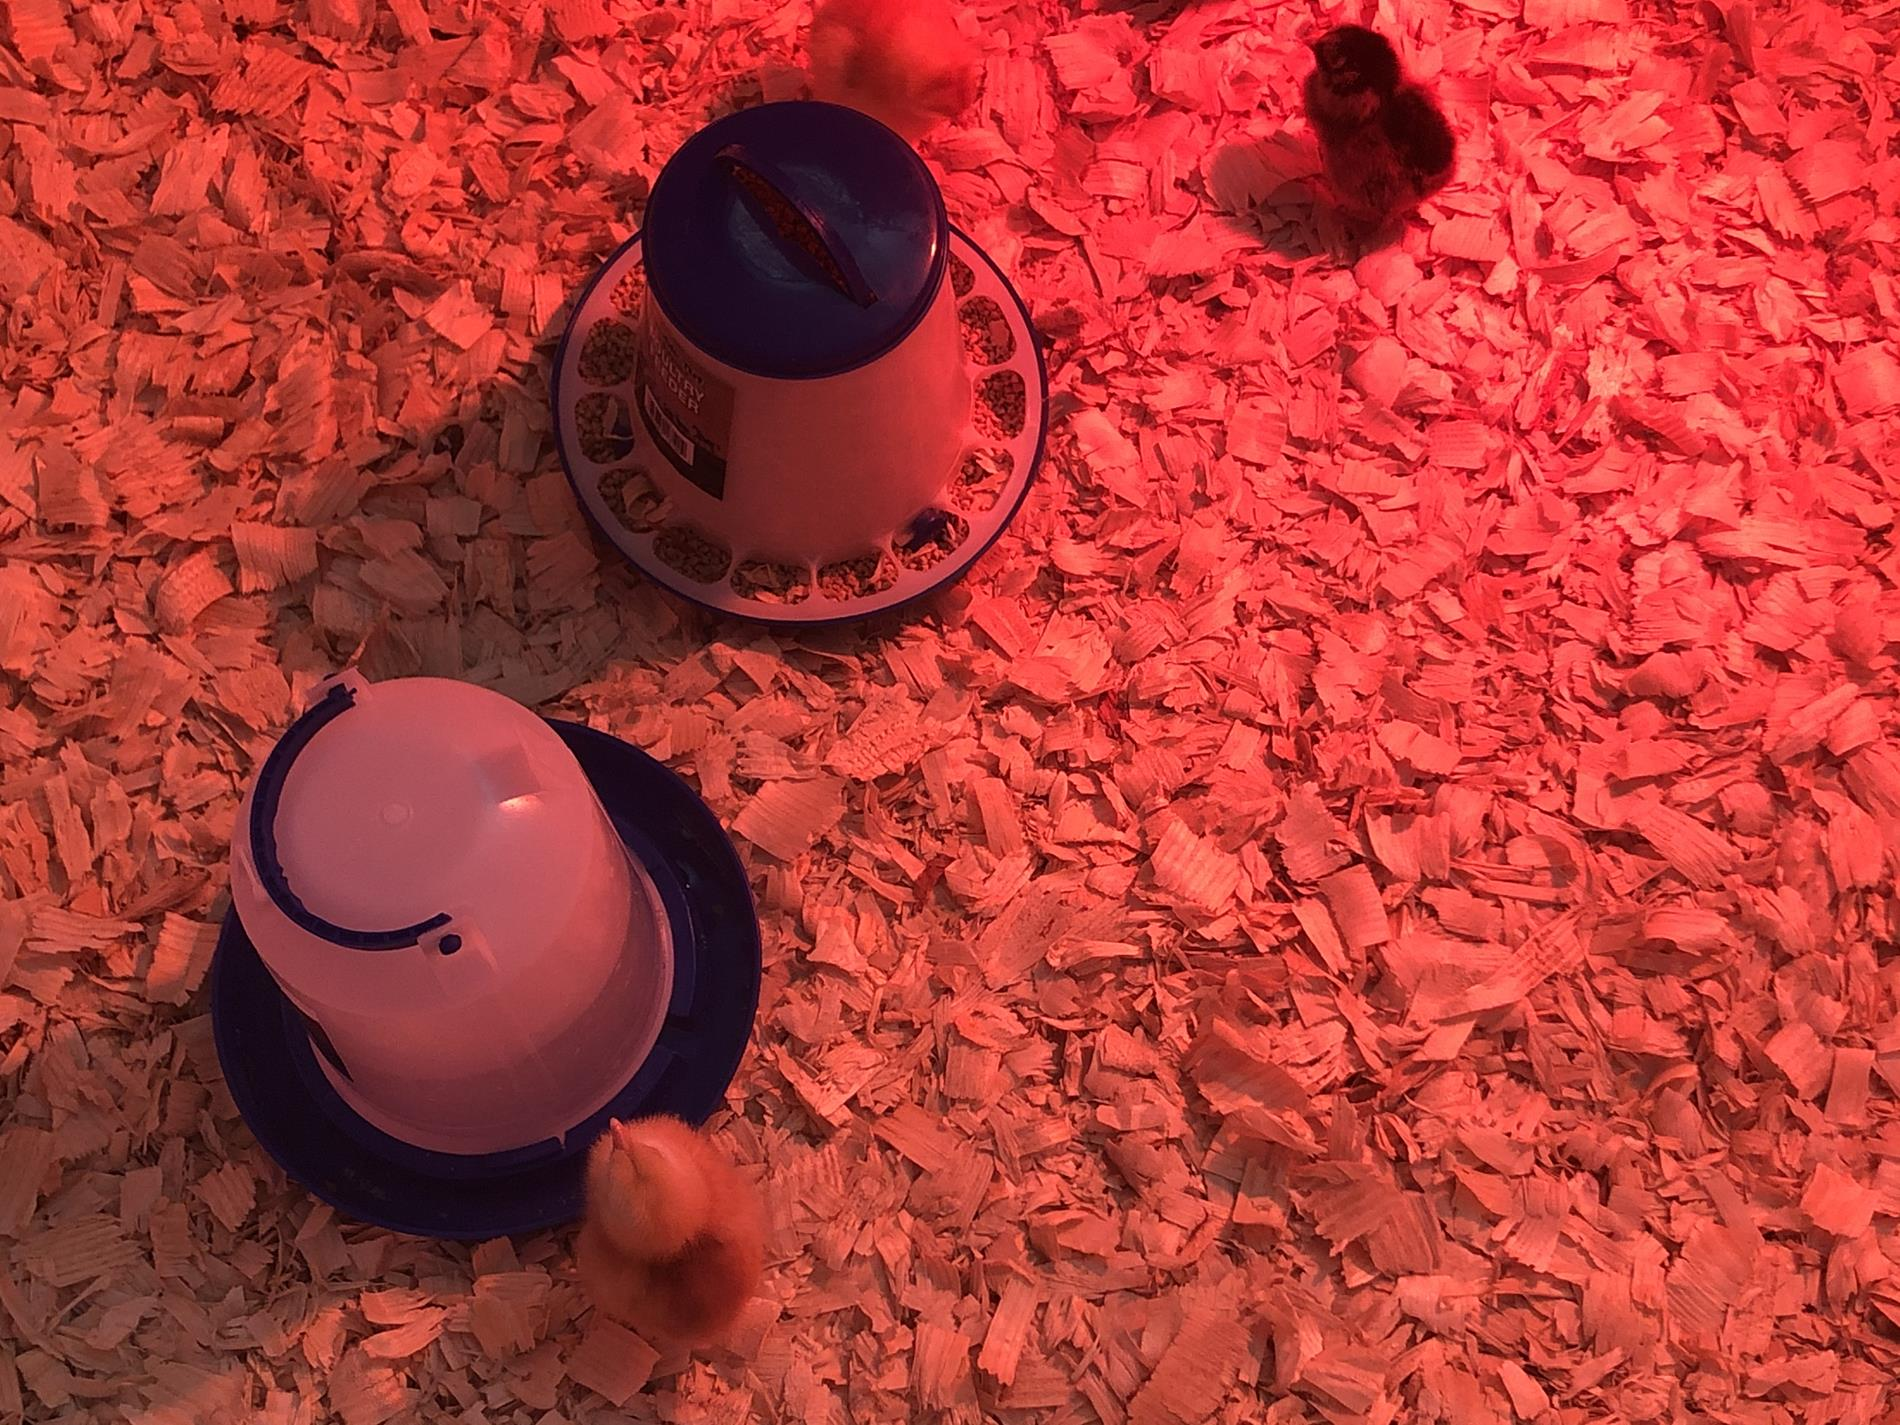 Taking Care of Baby Chicks In a Red Lit Up Area. There Was a Baby Chick Drinking Water